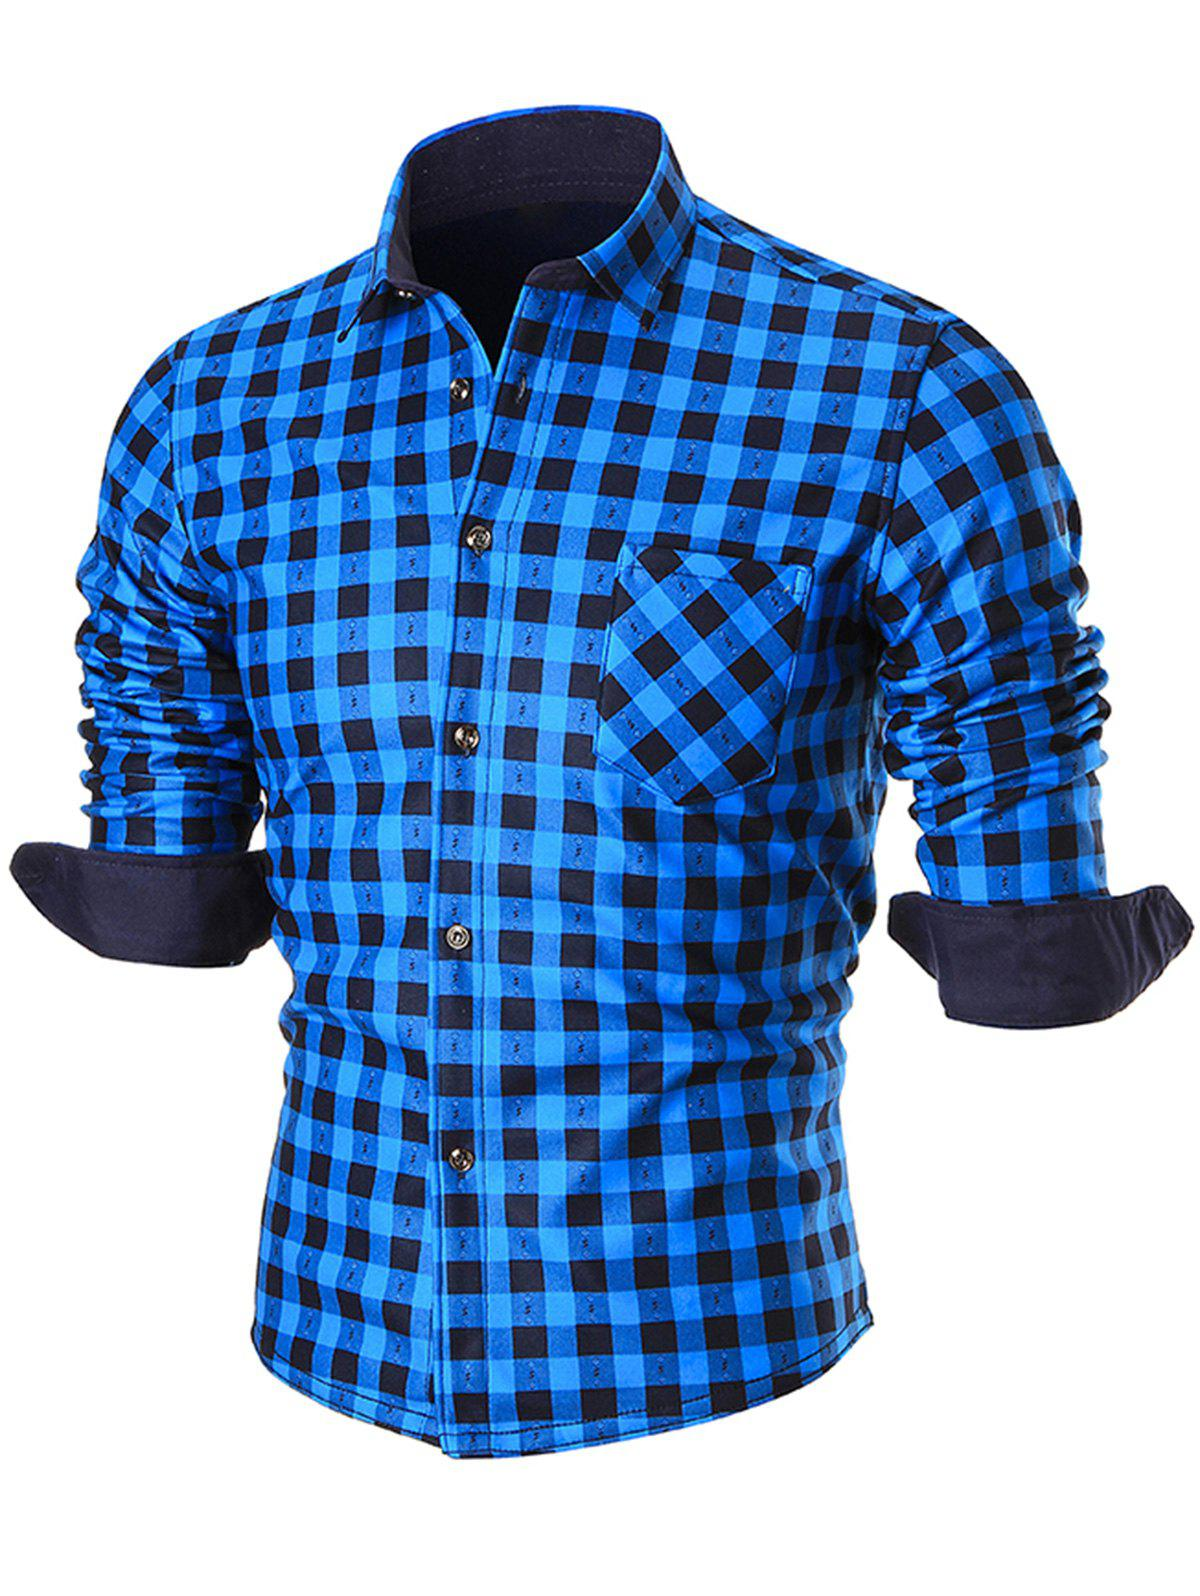 Warm Thicken Turn Down Collar Checkered Shirt - BLUE 3XL